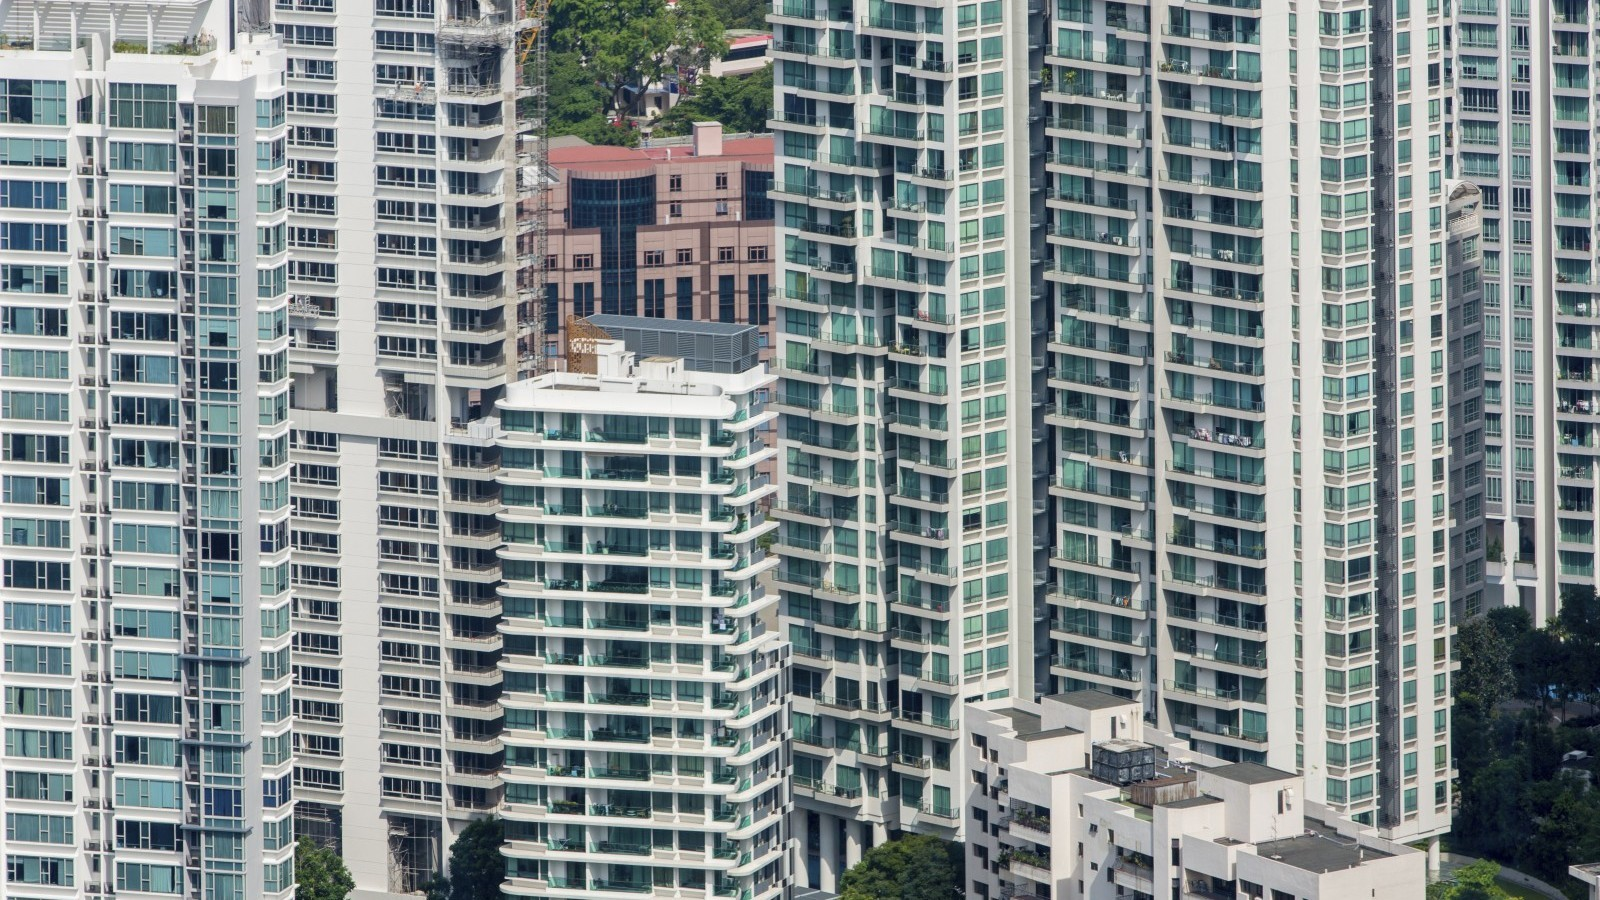 Thinking of buying a resale condo? Read up on our guide here!